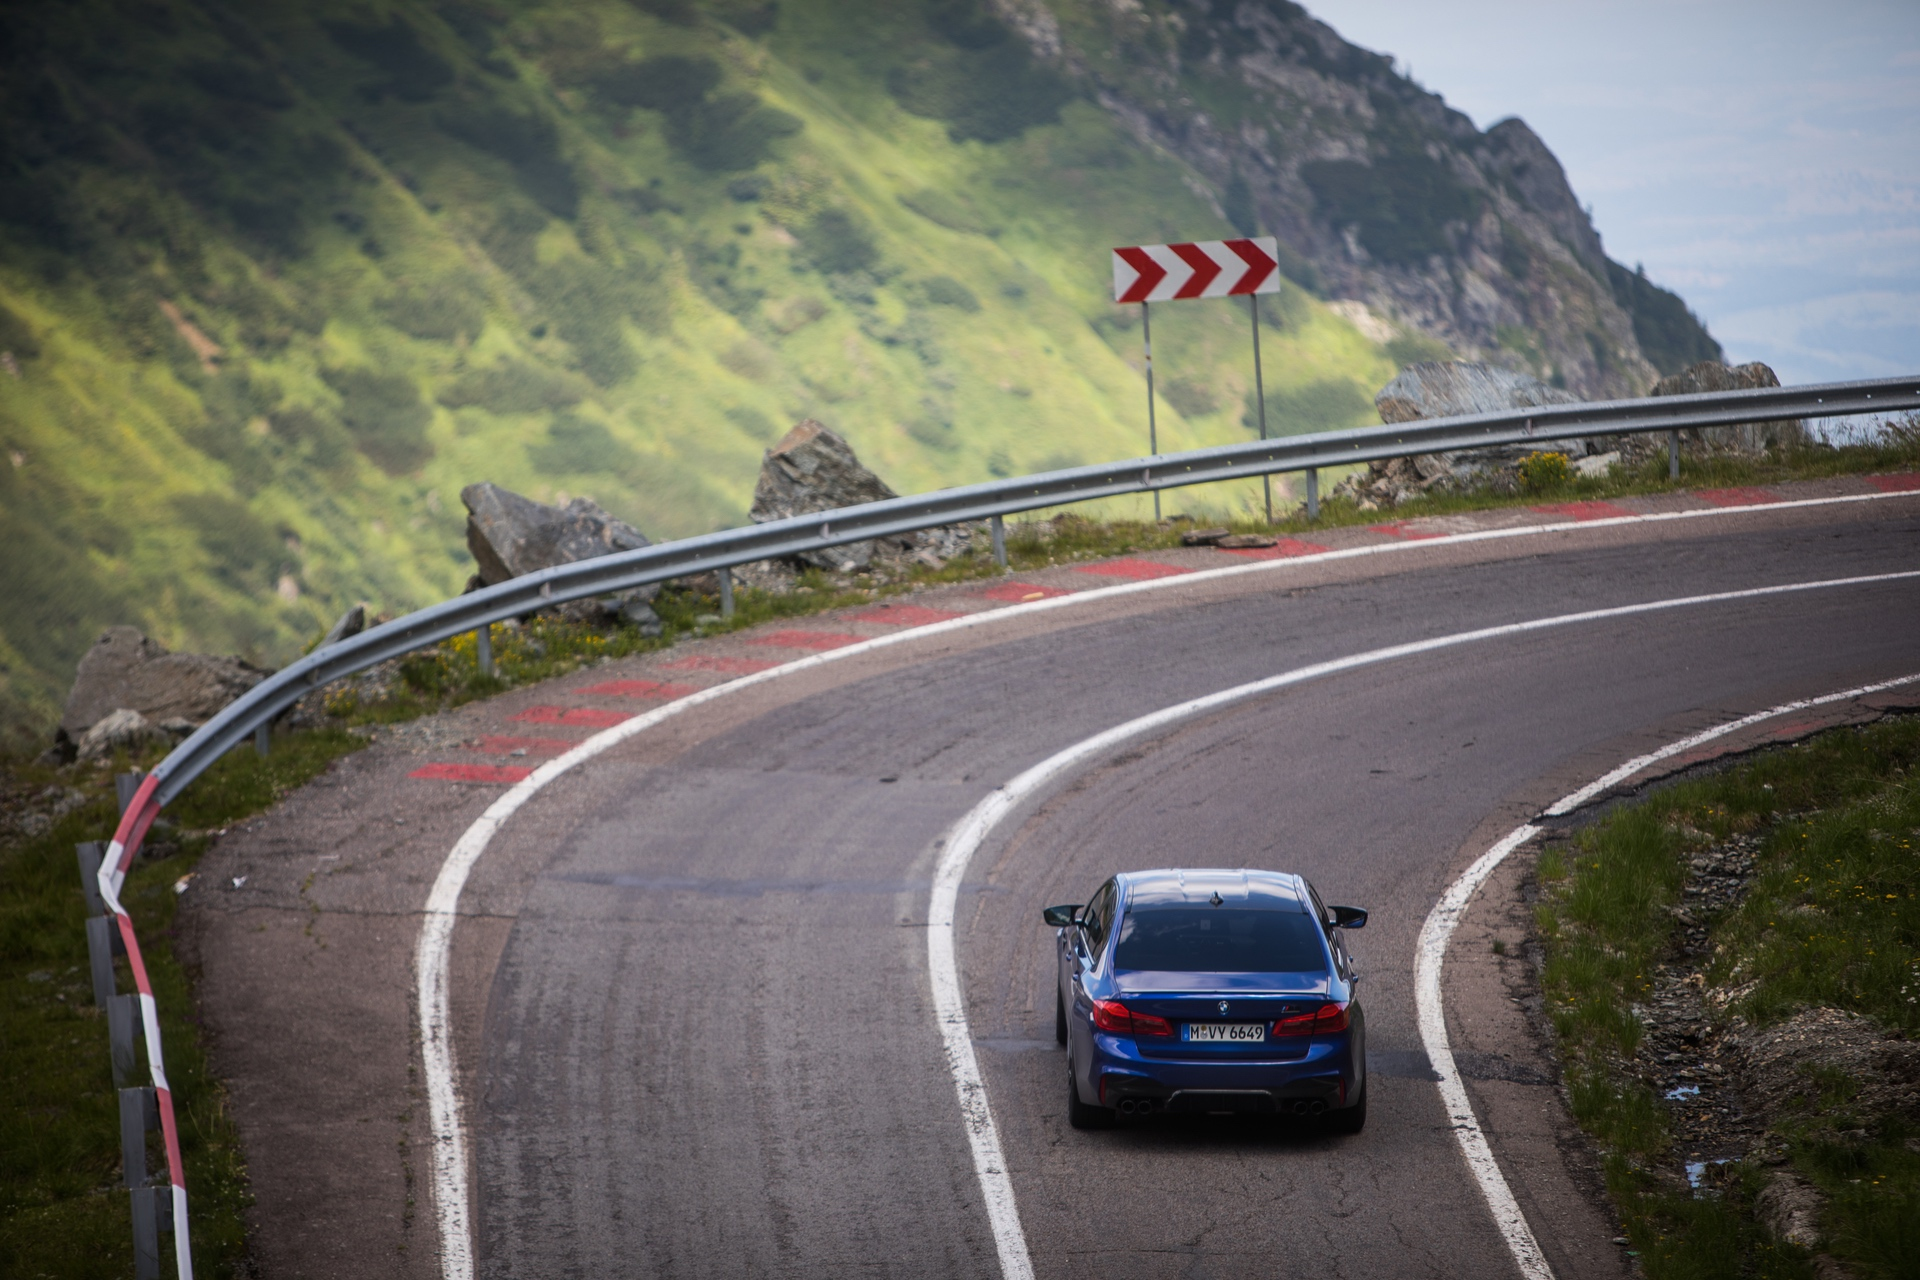 Some cool footage of the BMW M5 Competition on a famous driving road